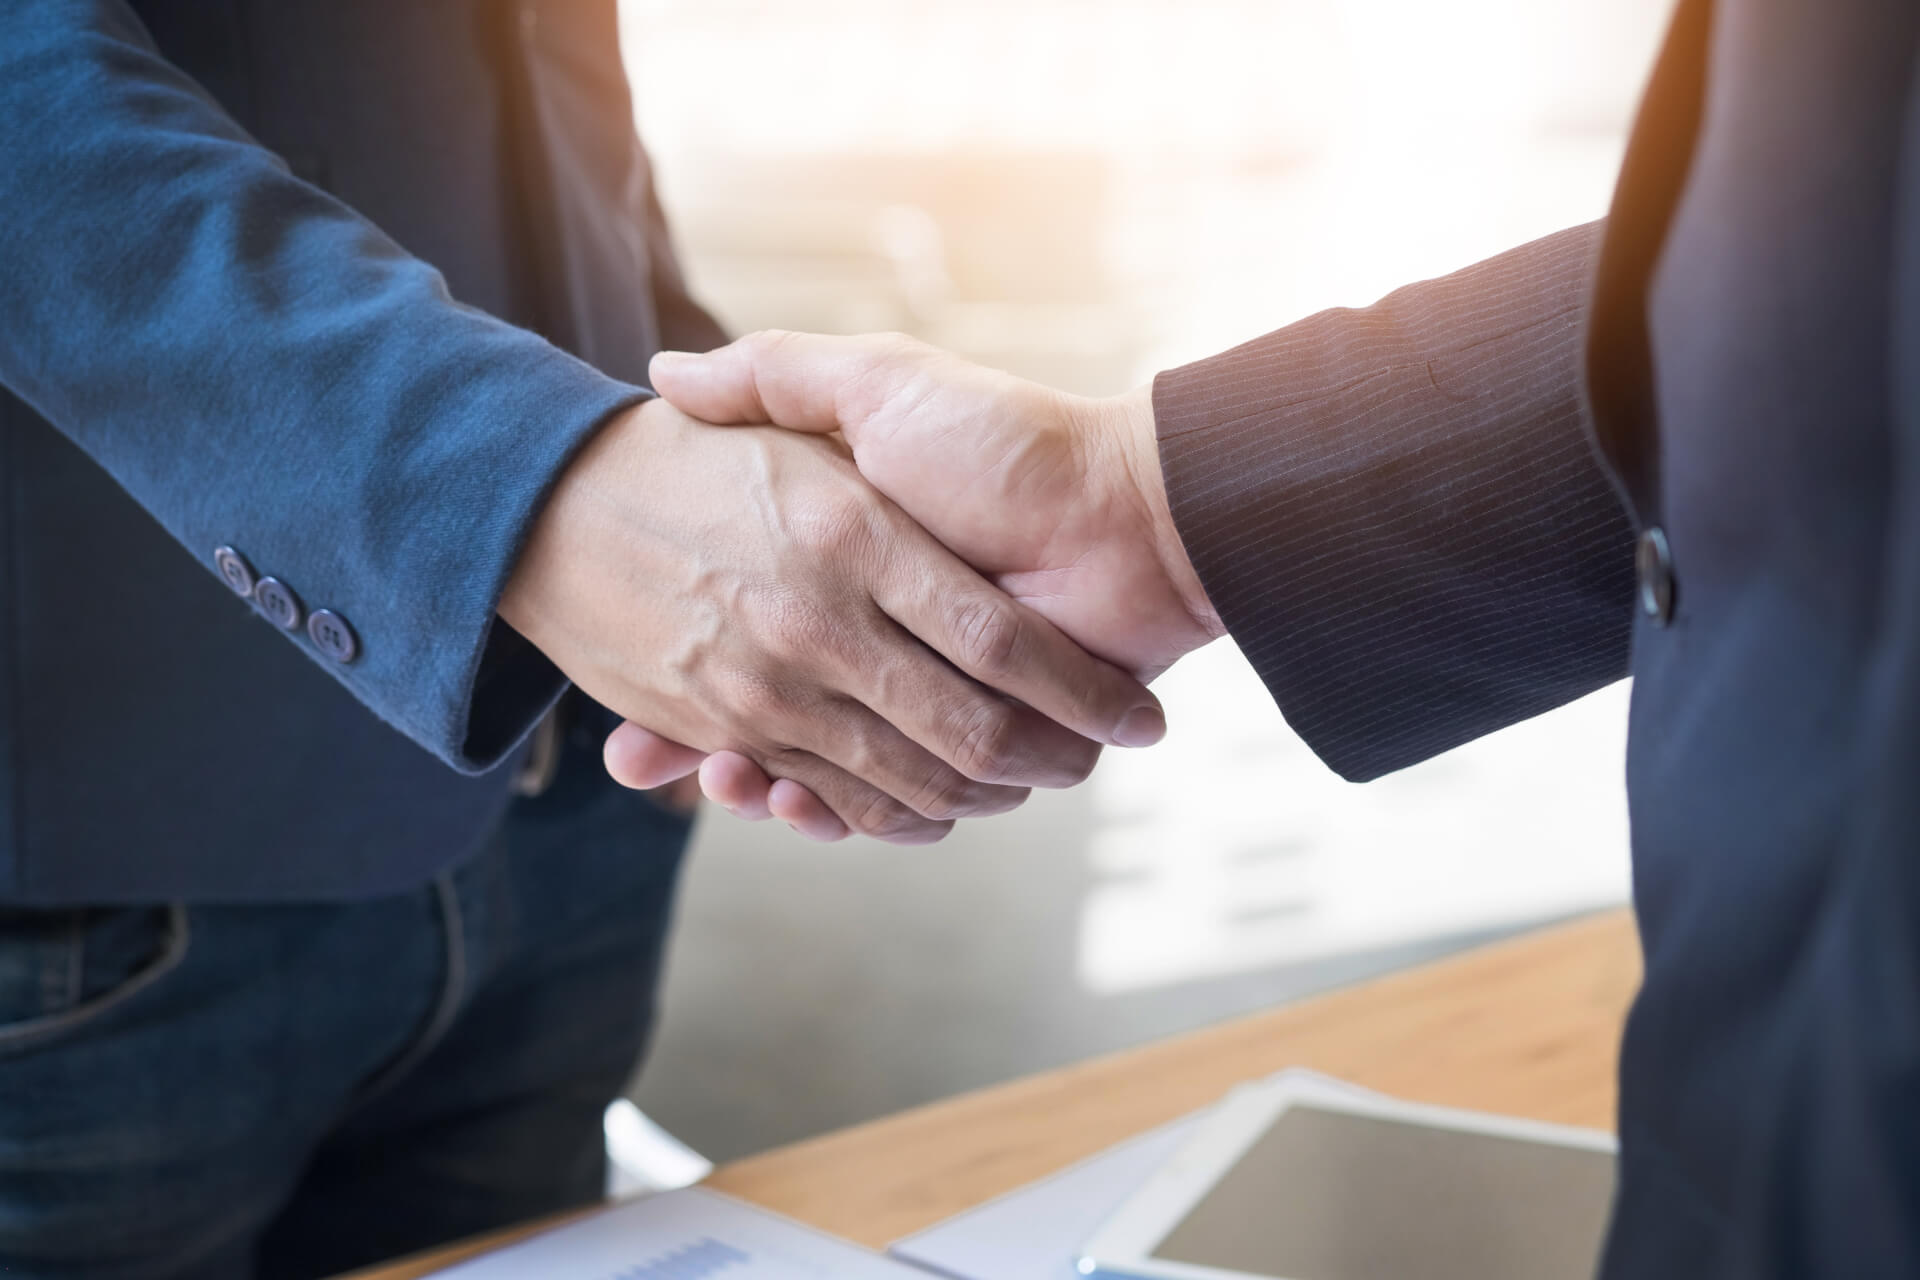 two-confident-business-man-shaking-hands-during-meeting-office-success-dealing-greeting-partner-concept (1) (1)